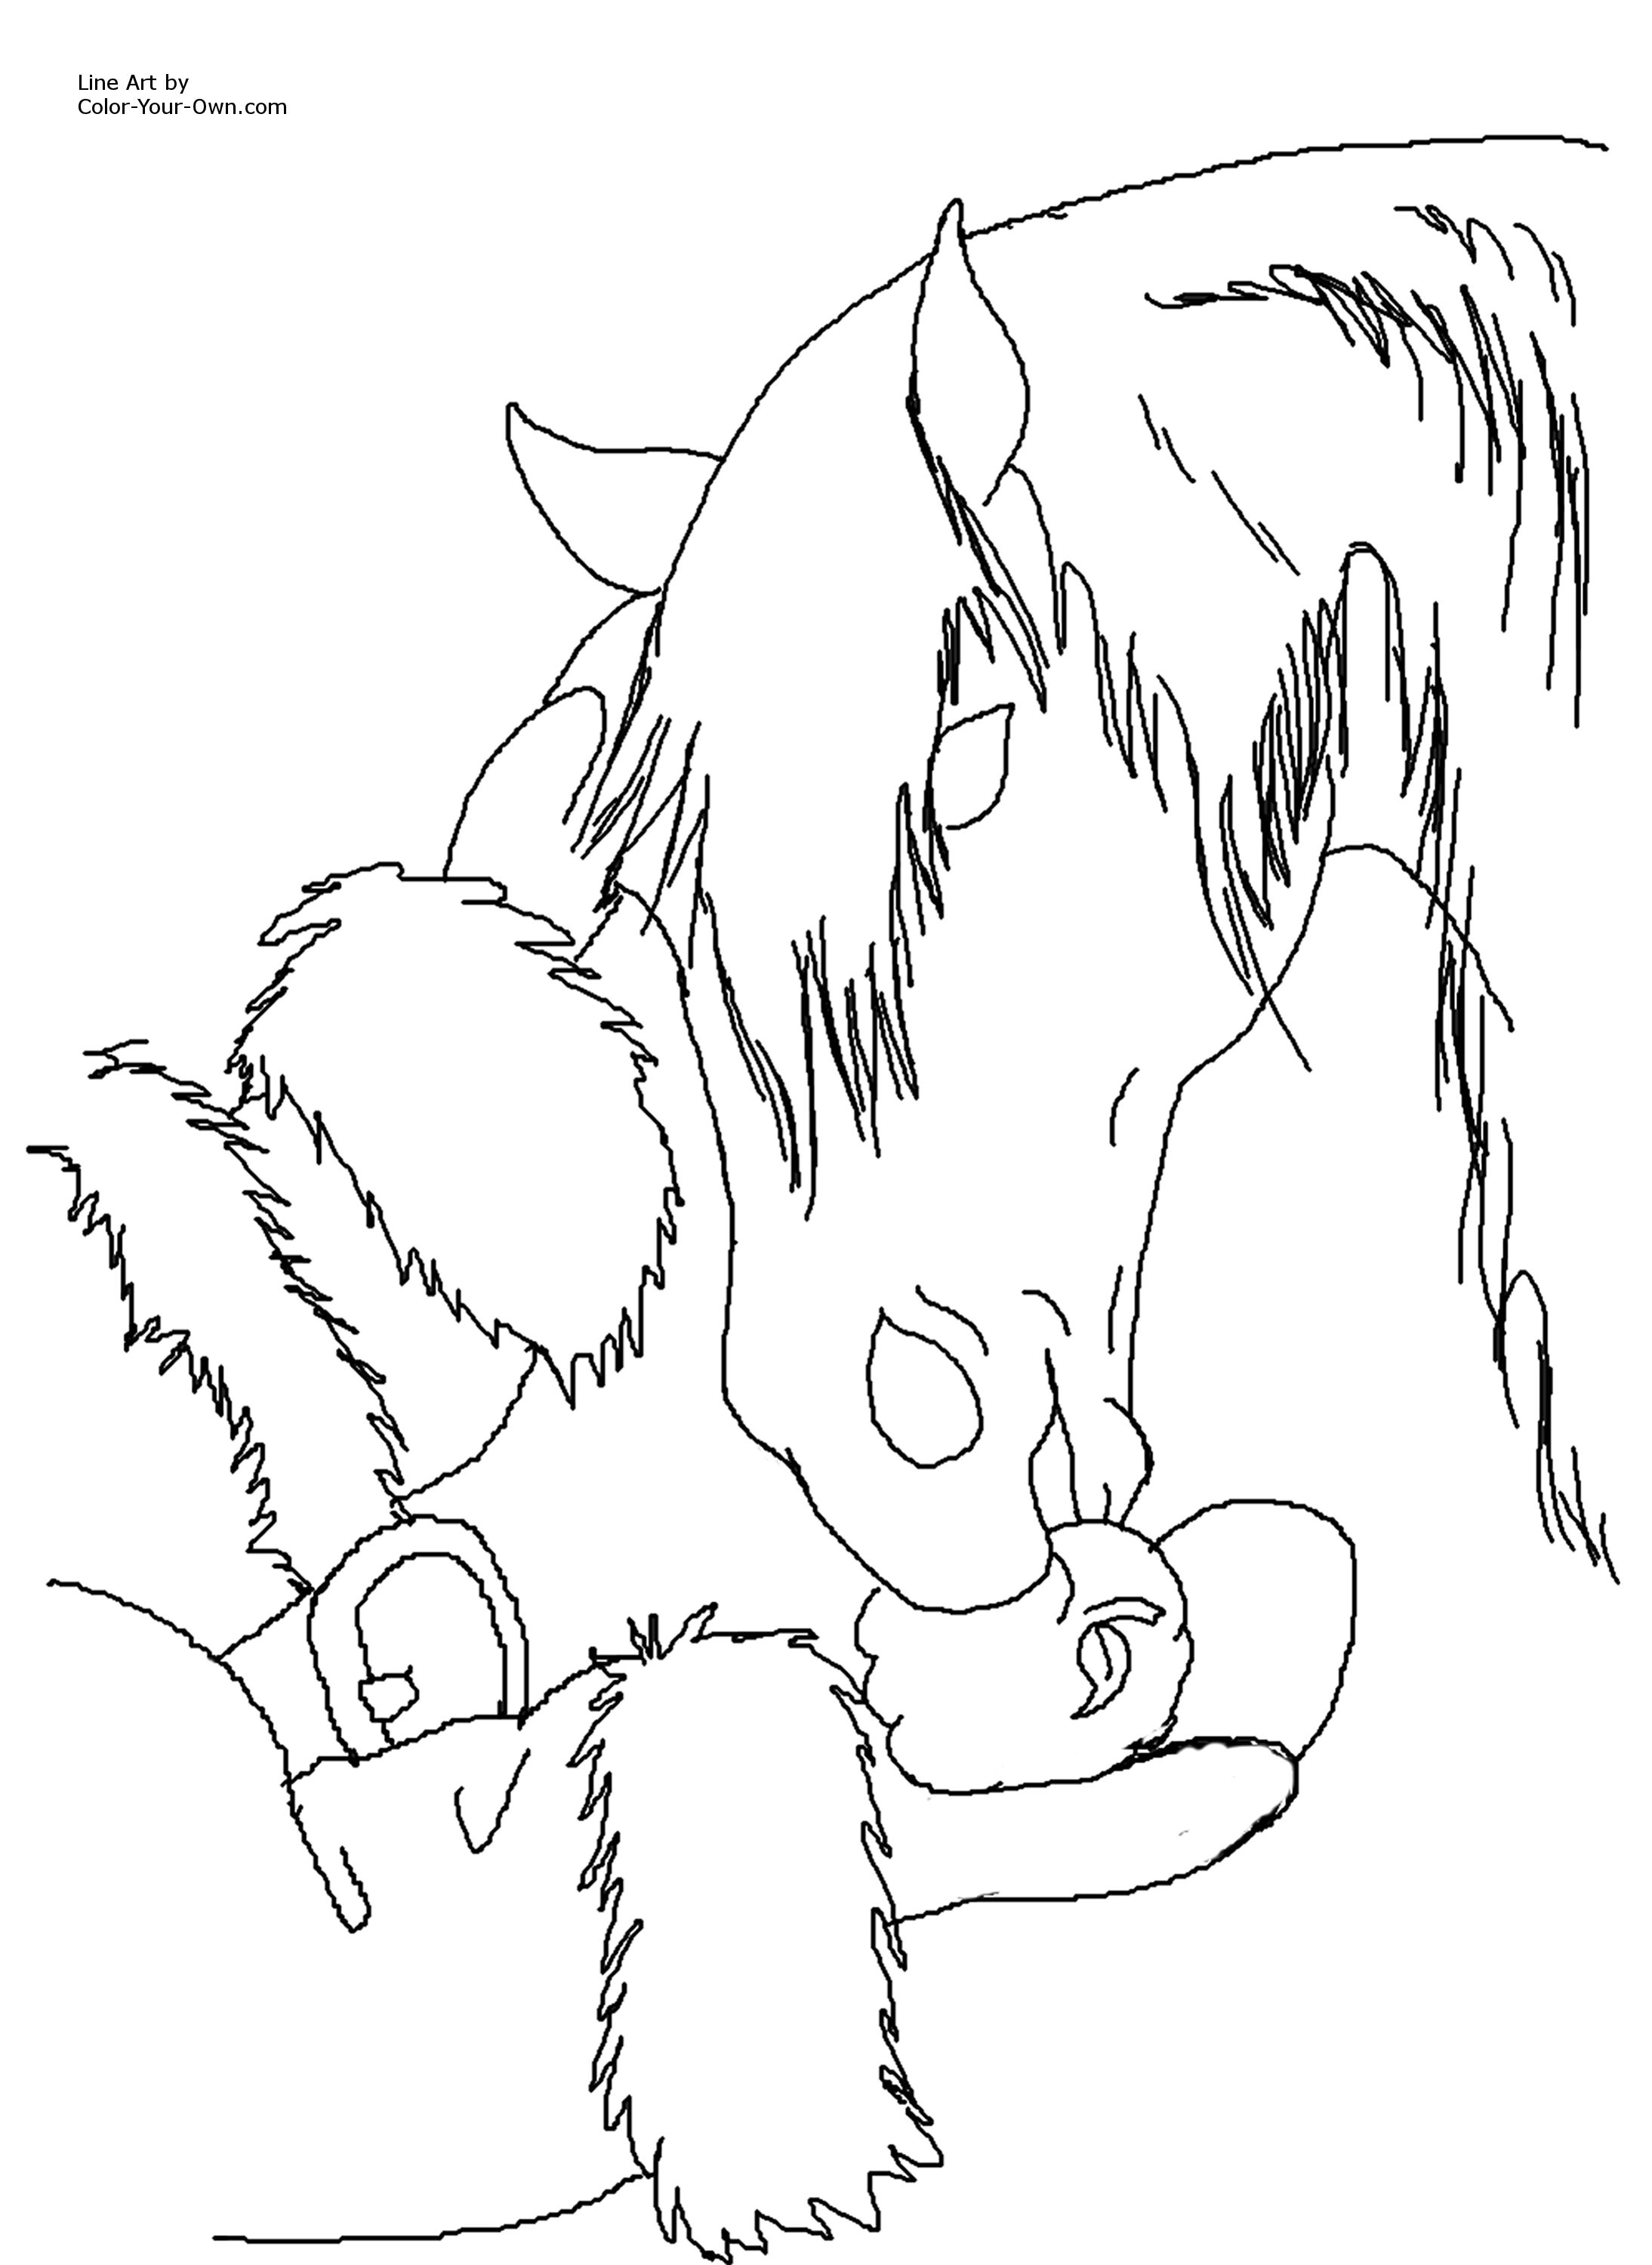 Free coloring horse pictures to print - Click Here For The Free Printable Coloring Page For 8 5 By 11 Inch Paper Then Click Print On Your Browser